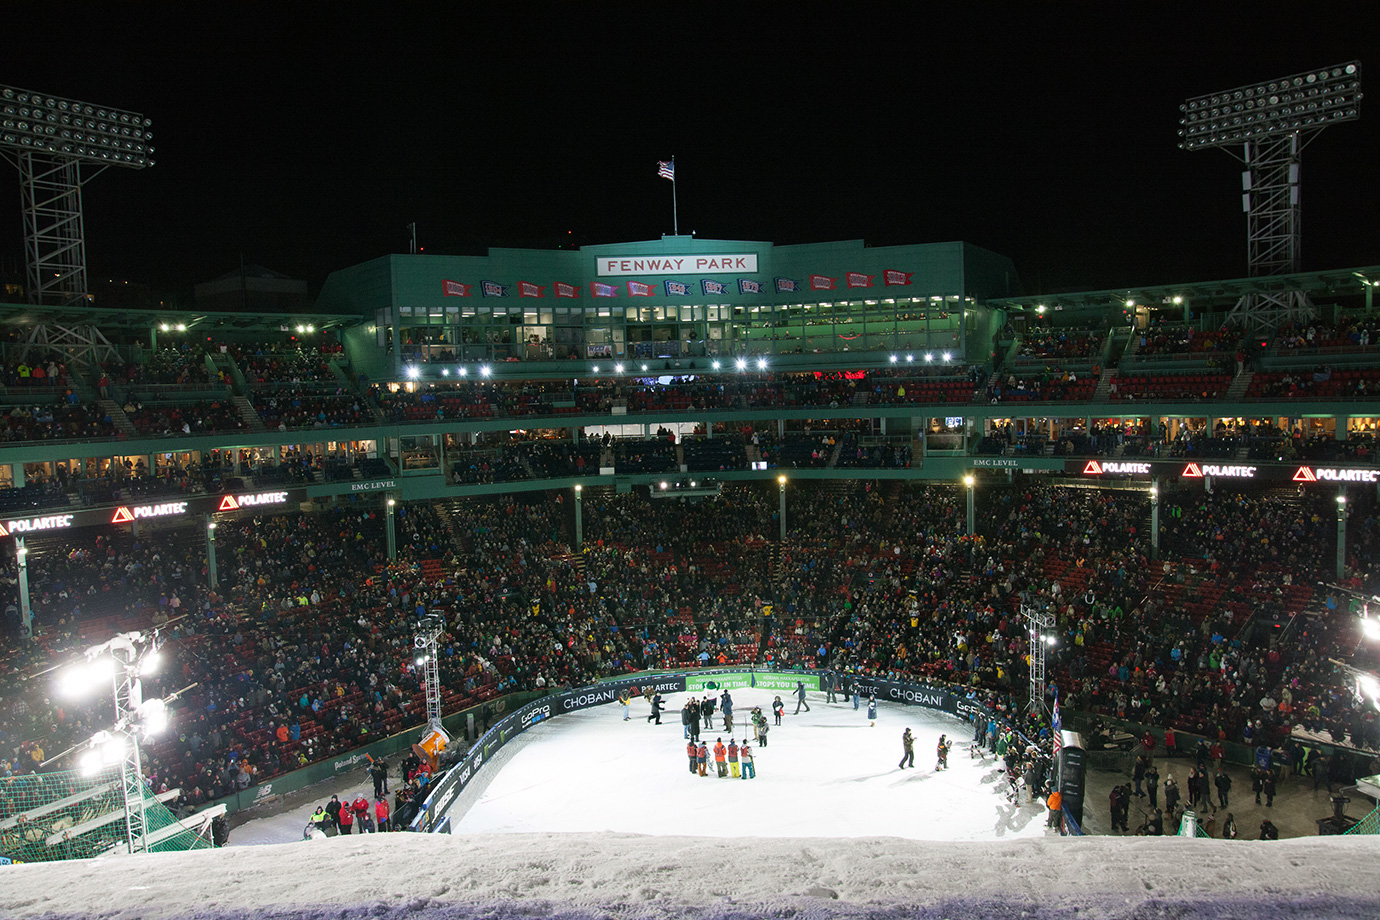 The crowd at Fenway Park for the snowboard Big Air competition, seen from the launch pad level of the jump.